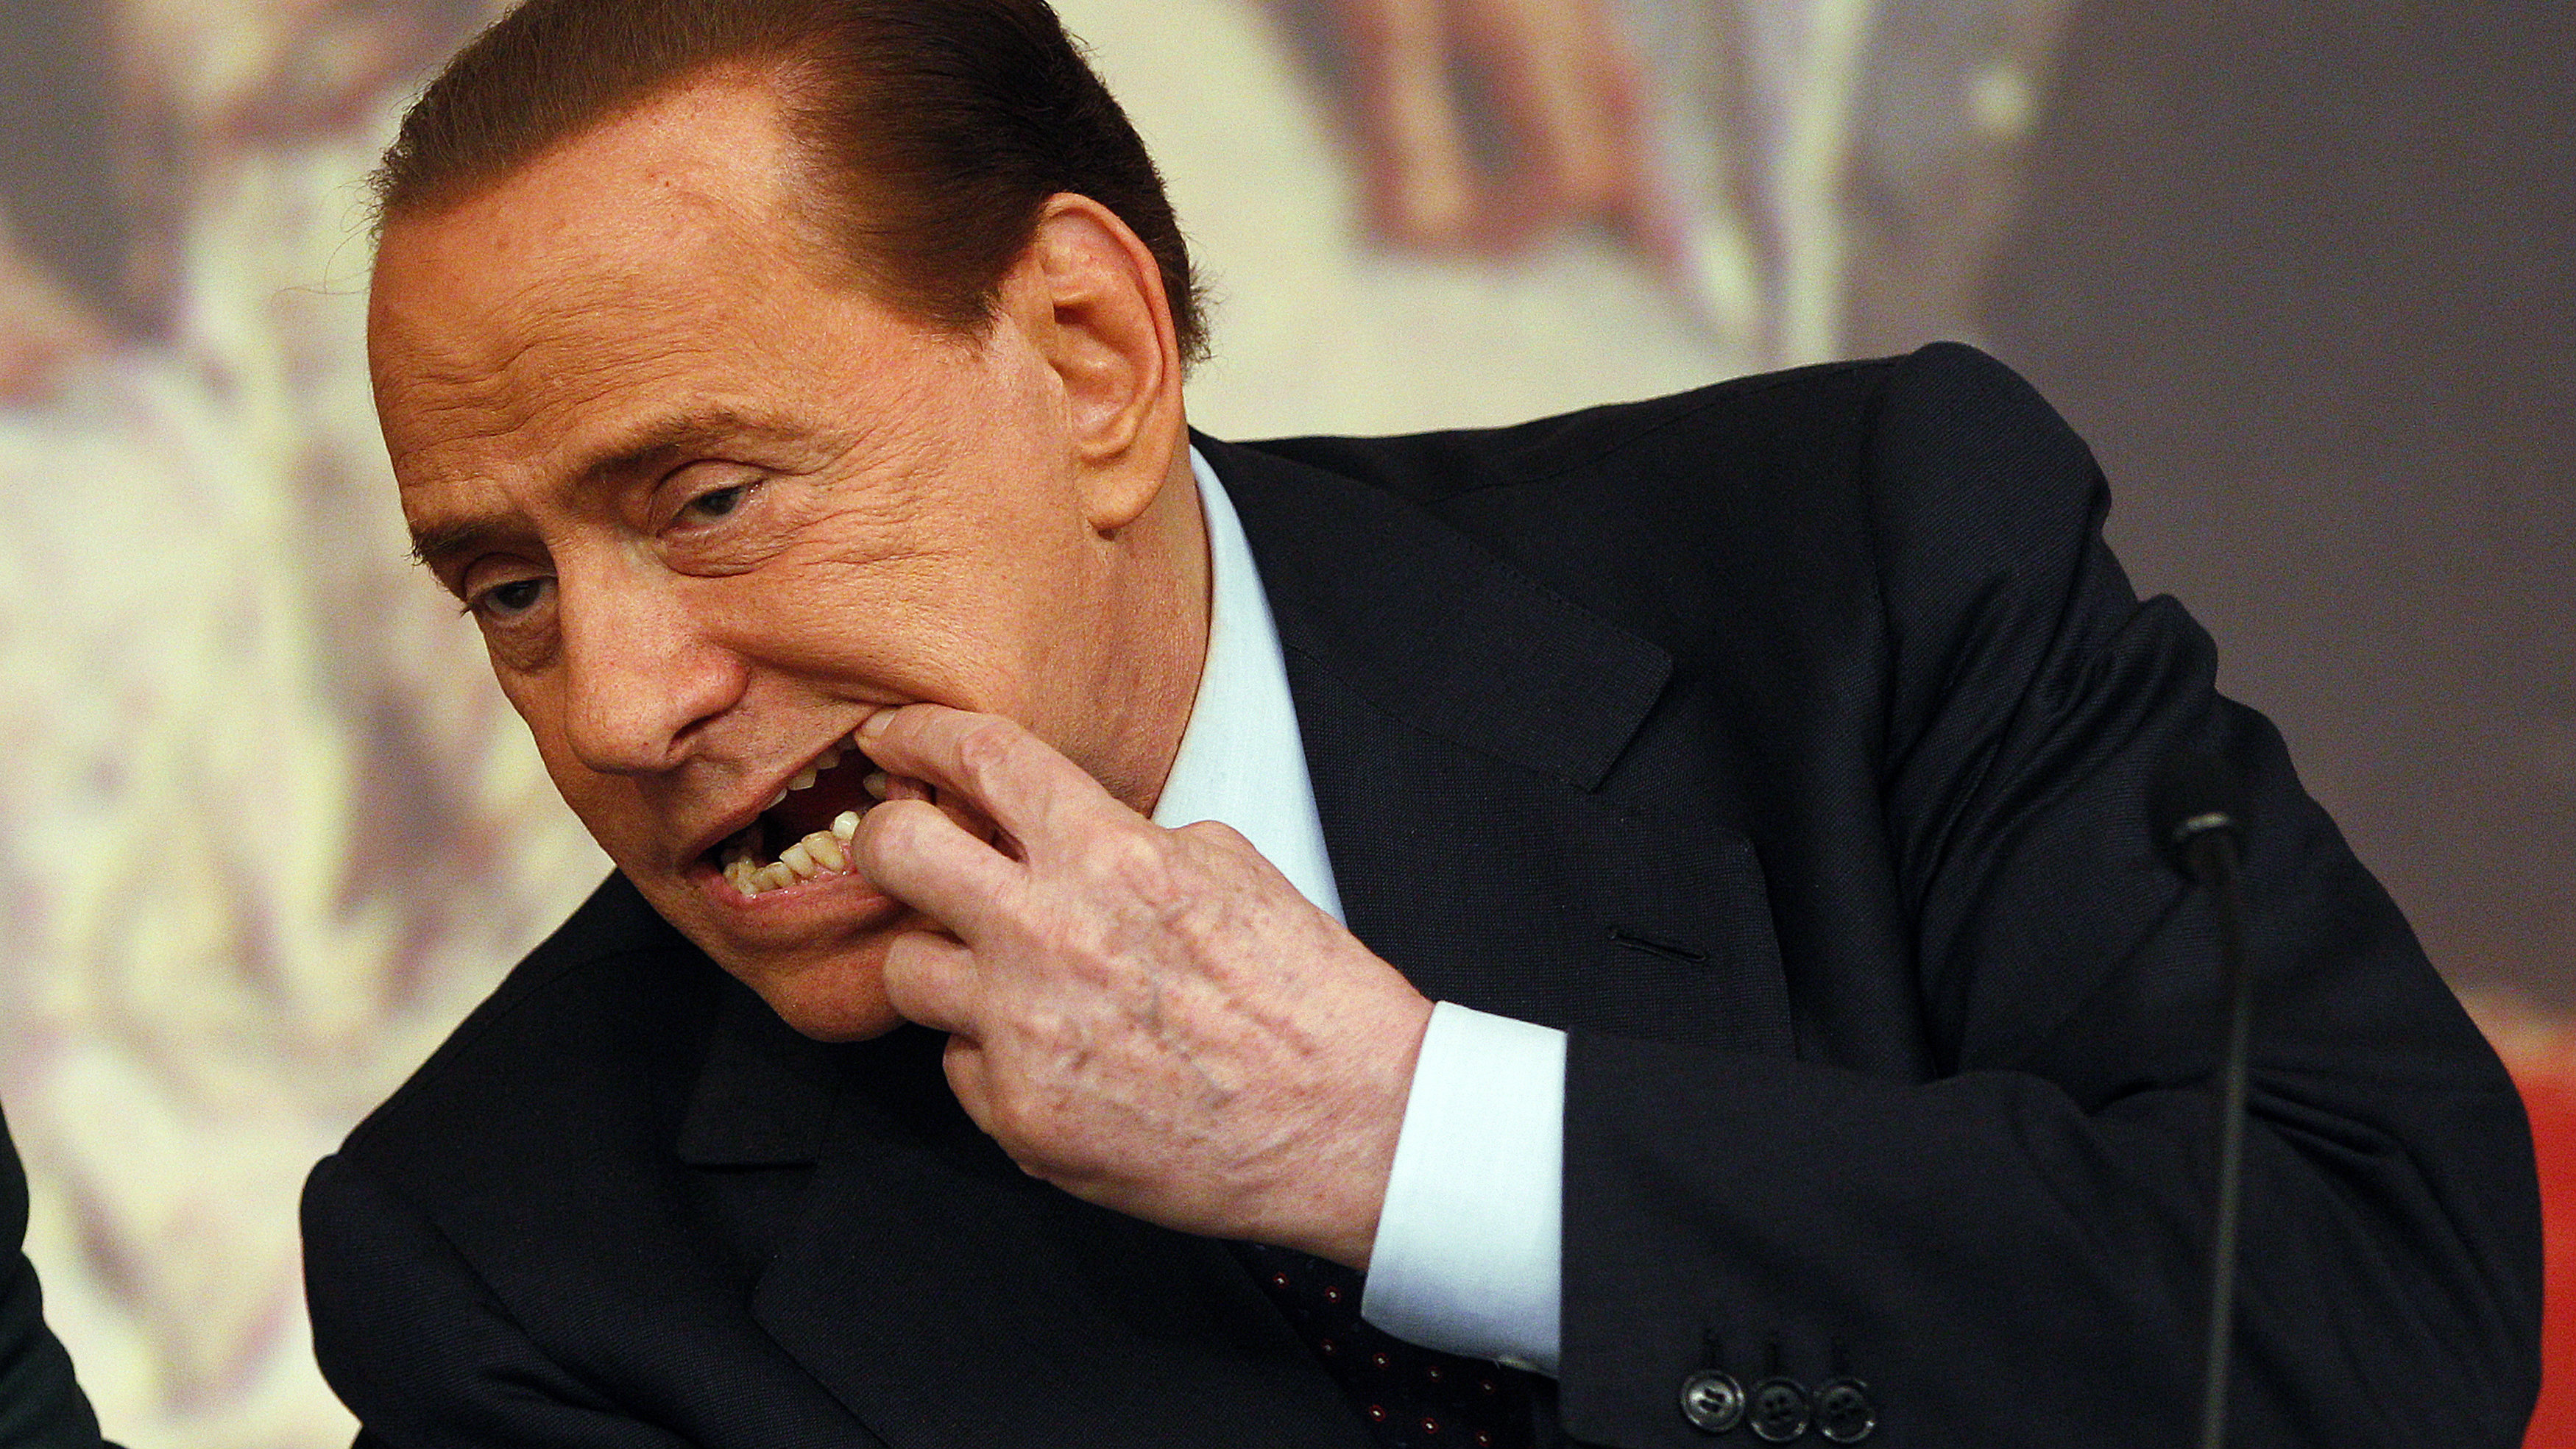 Italian Prime Minister Silvio Berlusconi shows his teeth during a news conference at Chigi palace in Rome February 9, 2011. Italy's government will request a parliamentary confidence vote on a package of measures to raise the taxation powers of town councils, Berlusconi said on Wednesday. REUTERS/Tony Gentile